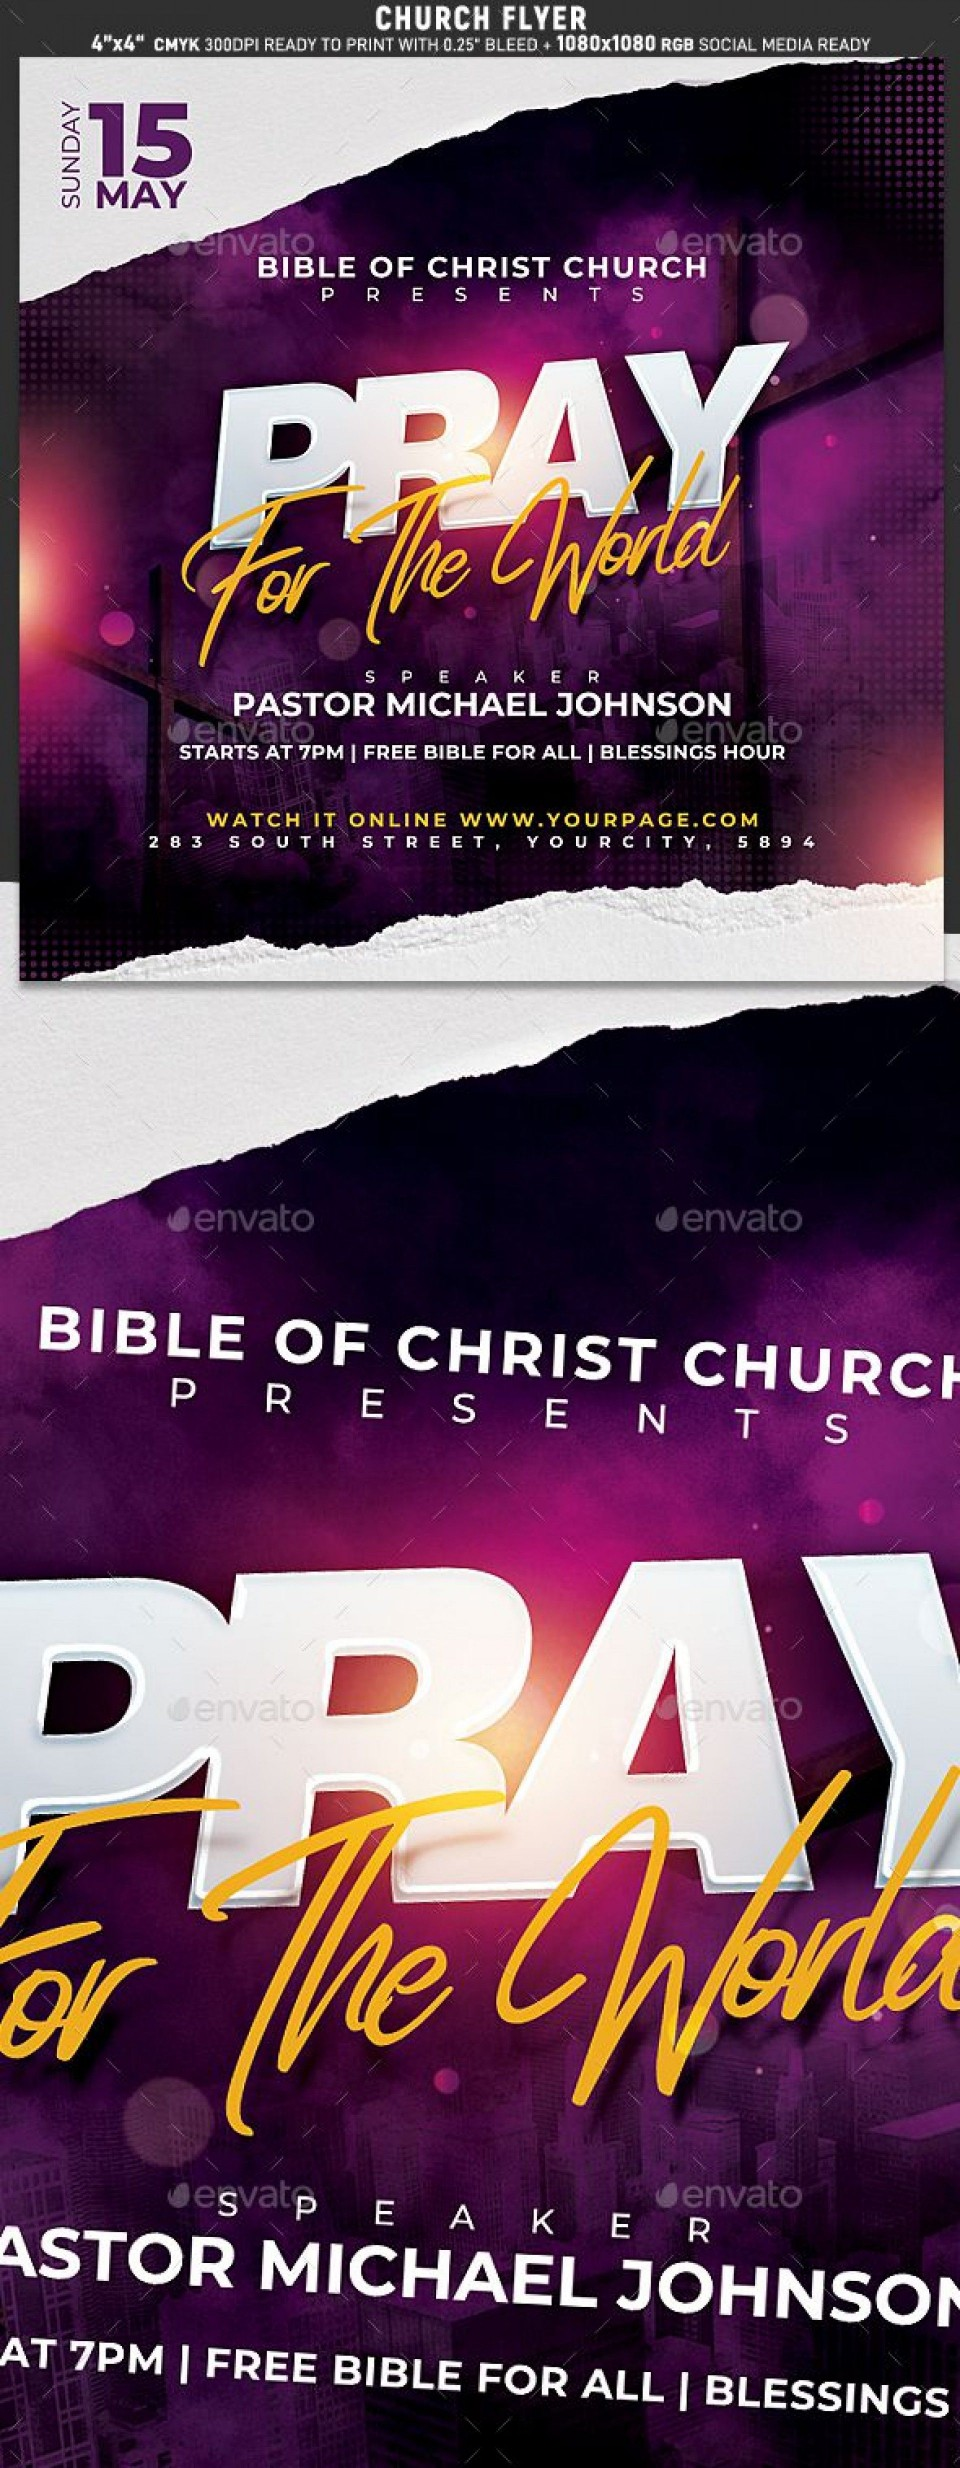 009 Marvelou Church Flyer Template Free Printable High Def  Event960